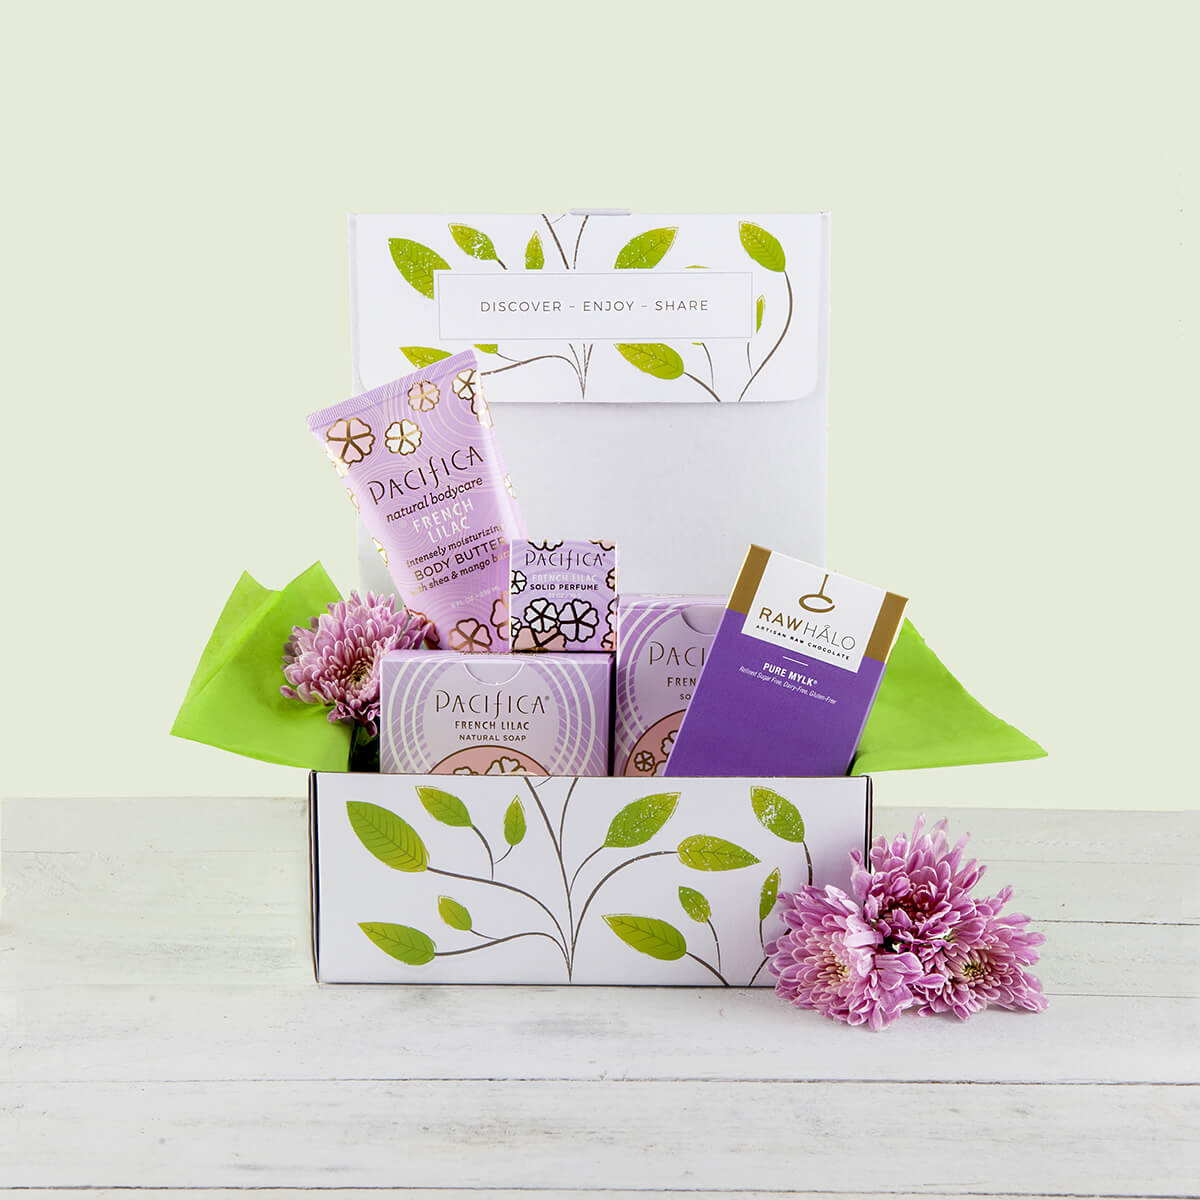 content/products/pacifica-french-lilac-gift-box.jpg